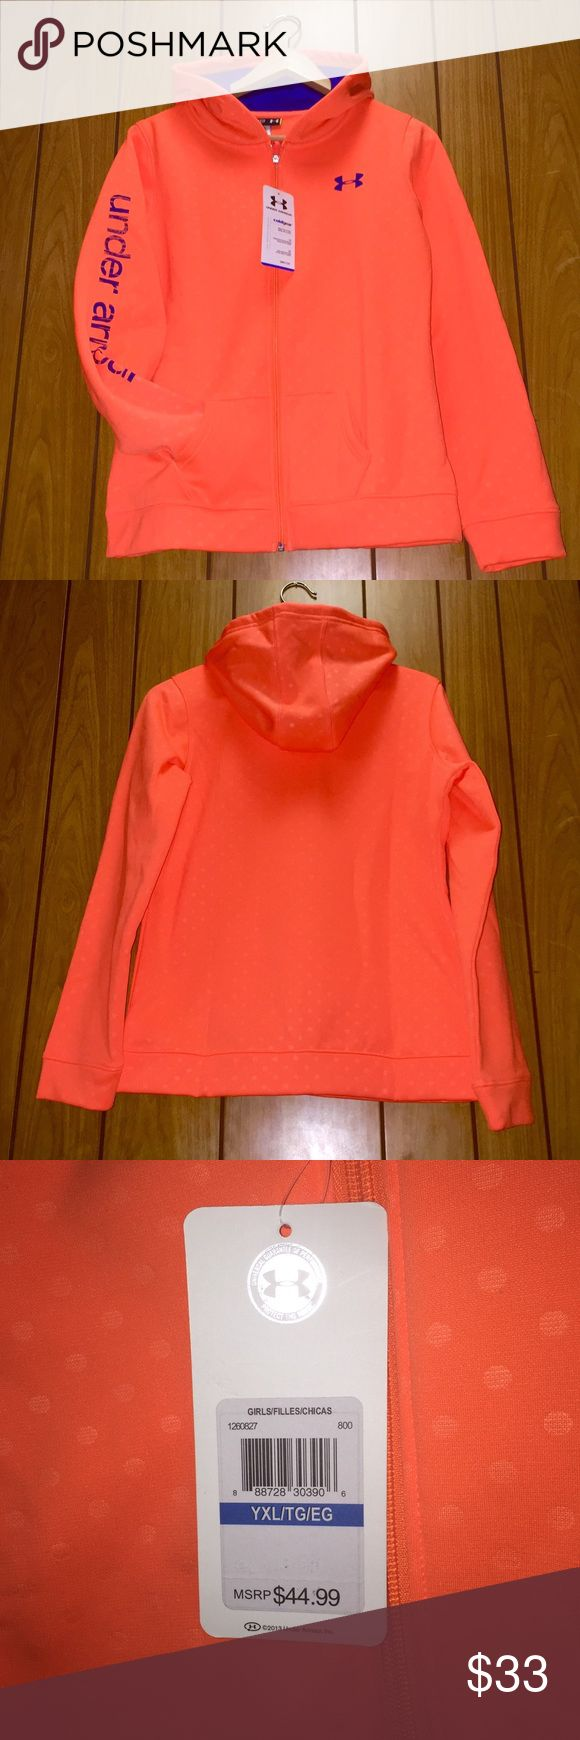 💥SALE💥Under Armour orange sweatshirt hoodie S Very unique sweatshirt from Under Armour with a polka dot pattern on a bright orange background. Tag reads Youth XLarge which is an equivalent of a Small in women sizing. I am a Small or XSmall, and this shirt fits me well with a loose and comfortable fit. The shirt is lined with a warm and cozy fleece. All details such as a lining of the hood, front logo, and lettering on the right sleeve are in royal blue. It has a full length zipper and two…